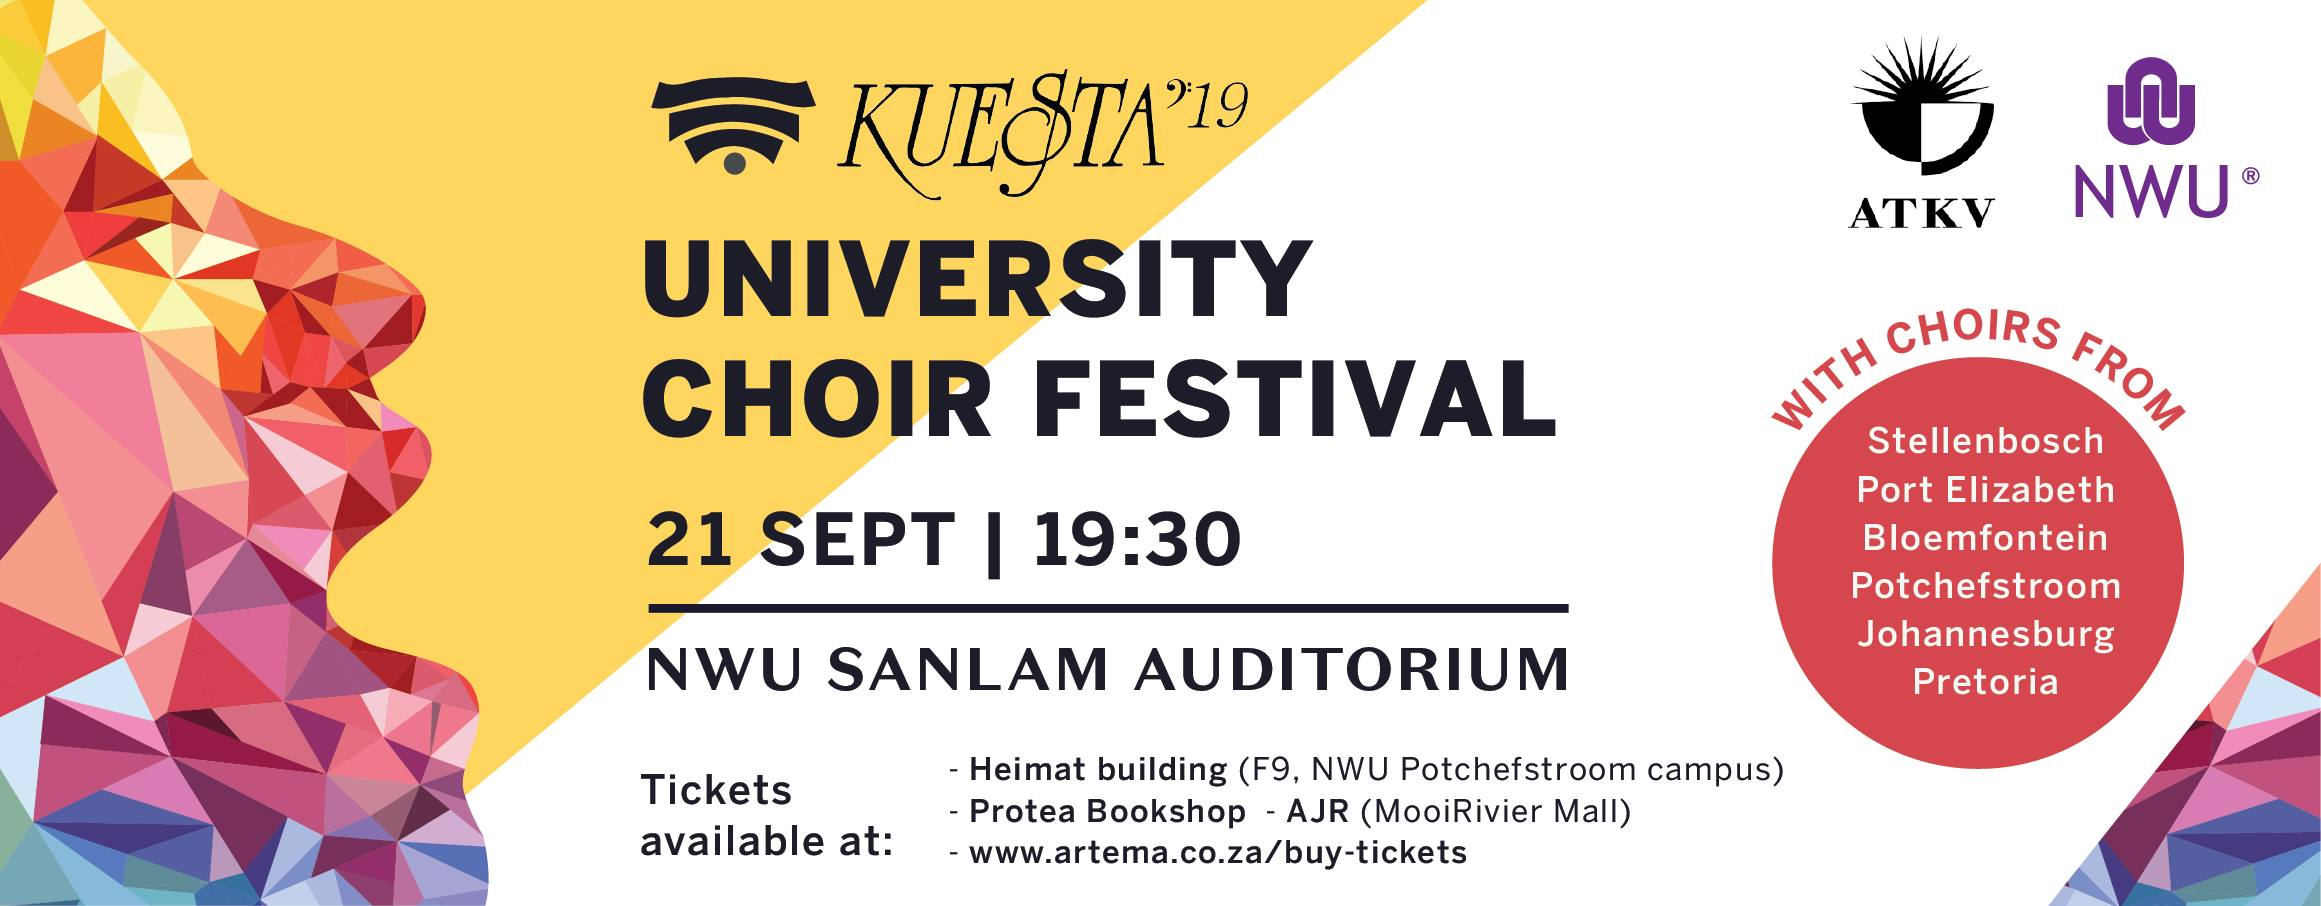 Tickets for Kuesta Choir Festival 2019 in Potchefstroom from